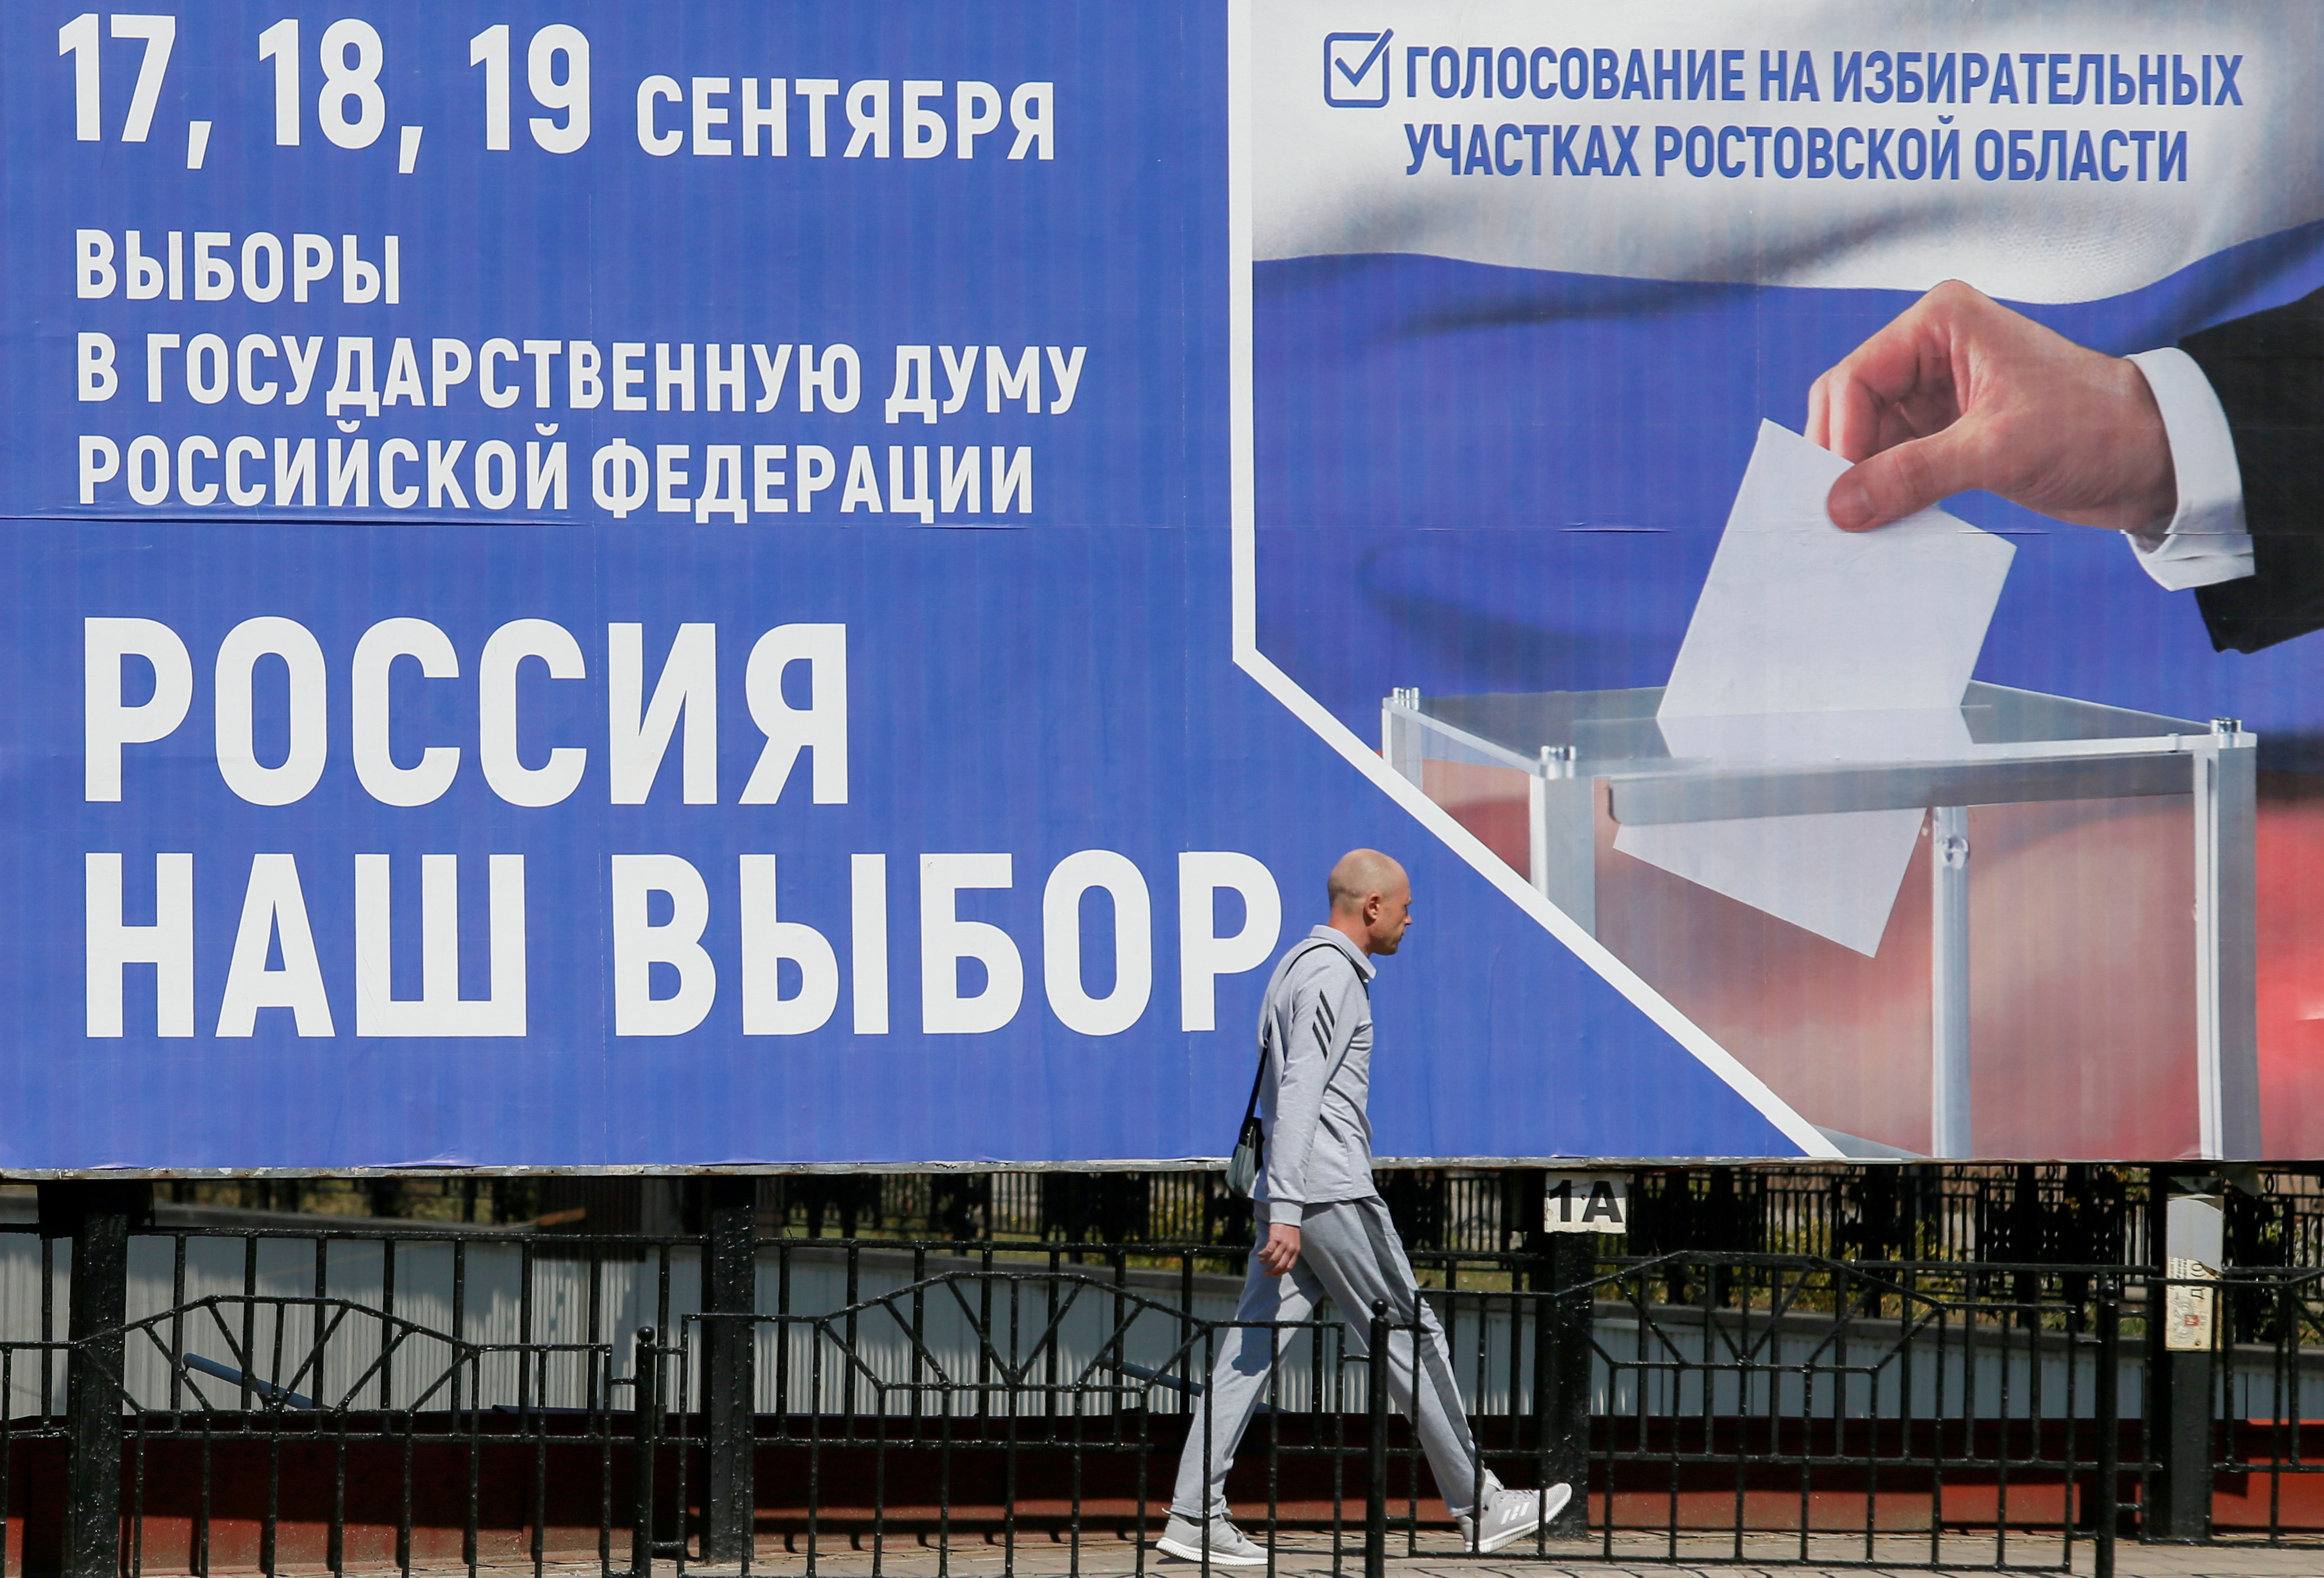 A pedestrian walks past a board informing of the upcoming Russian parliamentary elections in a street in the rebel-held city of Donetsk, Ukraine September 9, 2021. A board promotes to take part in the election by voting at polling stations in Russia's Rostov Region and reads: